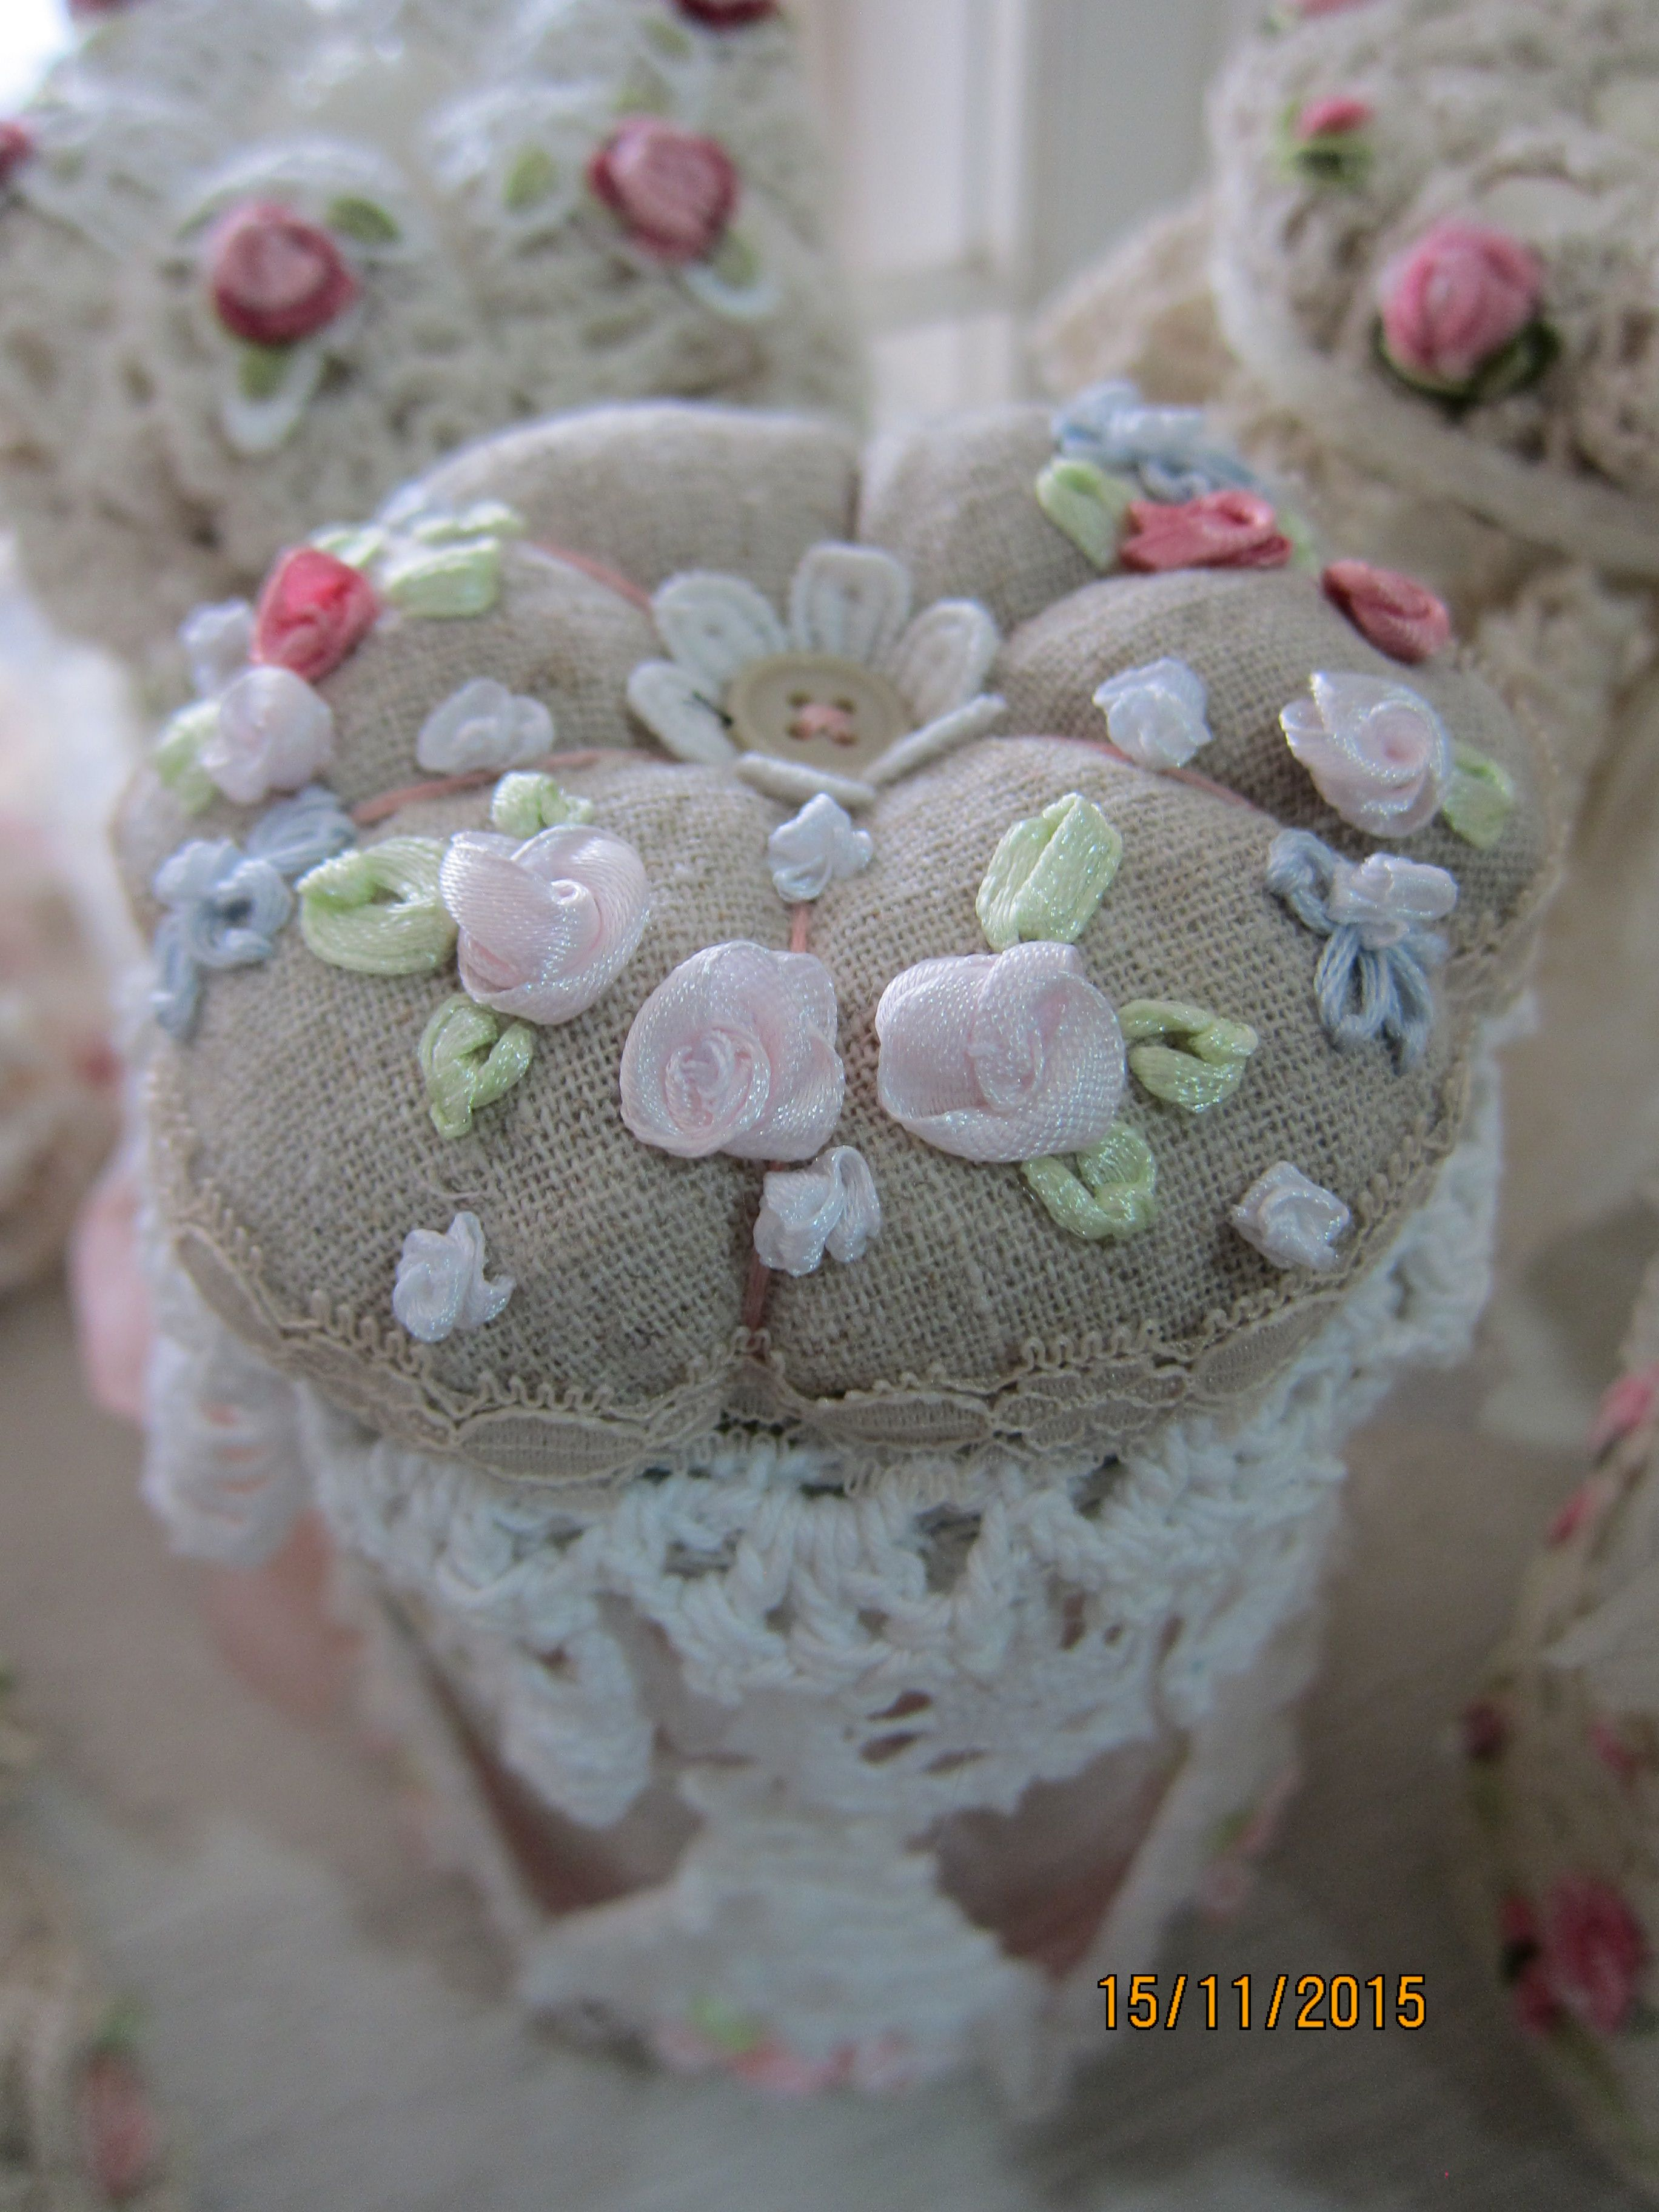 Embroidered Rose*Pin Cushion*Jar* created by Msgardengrove1